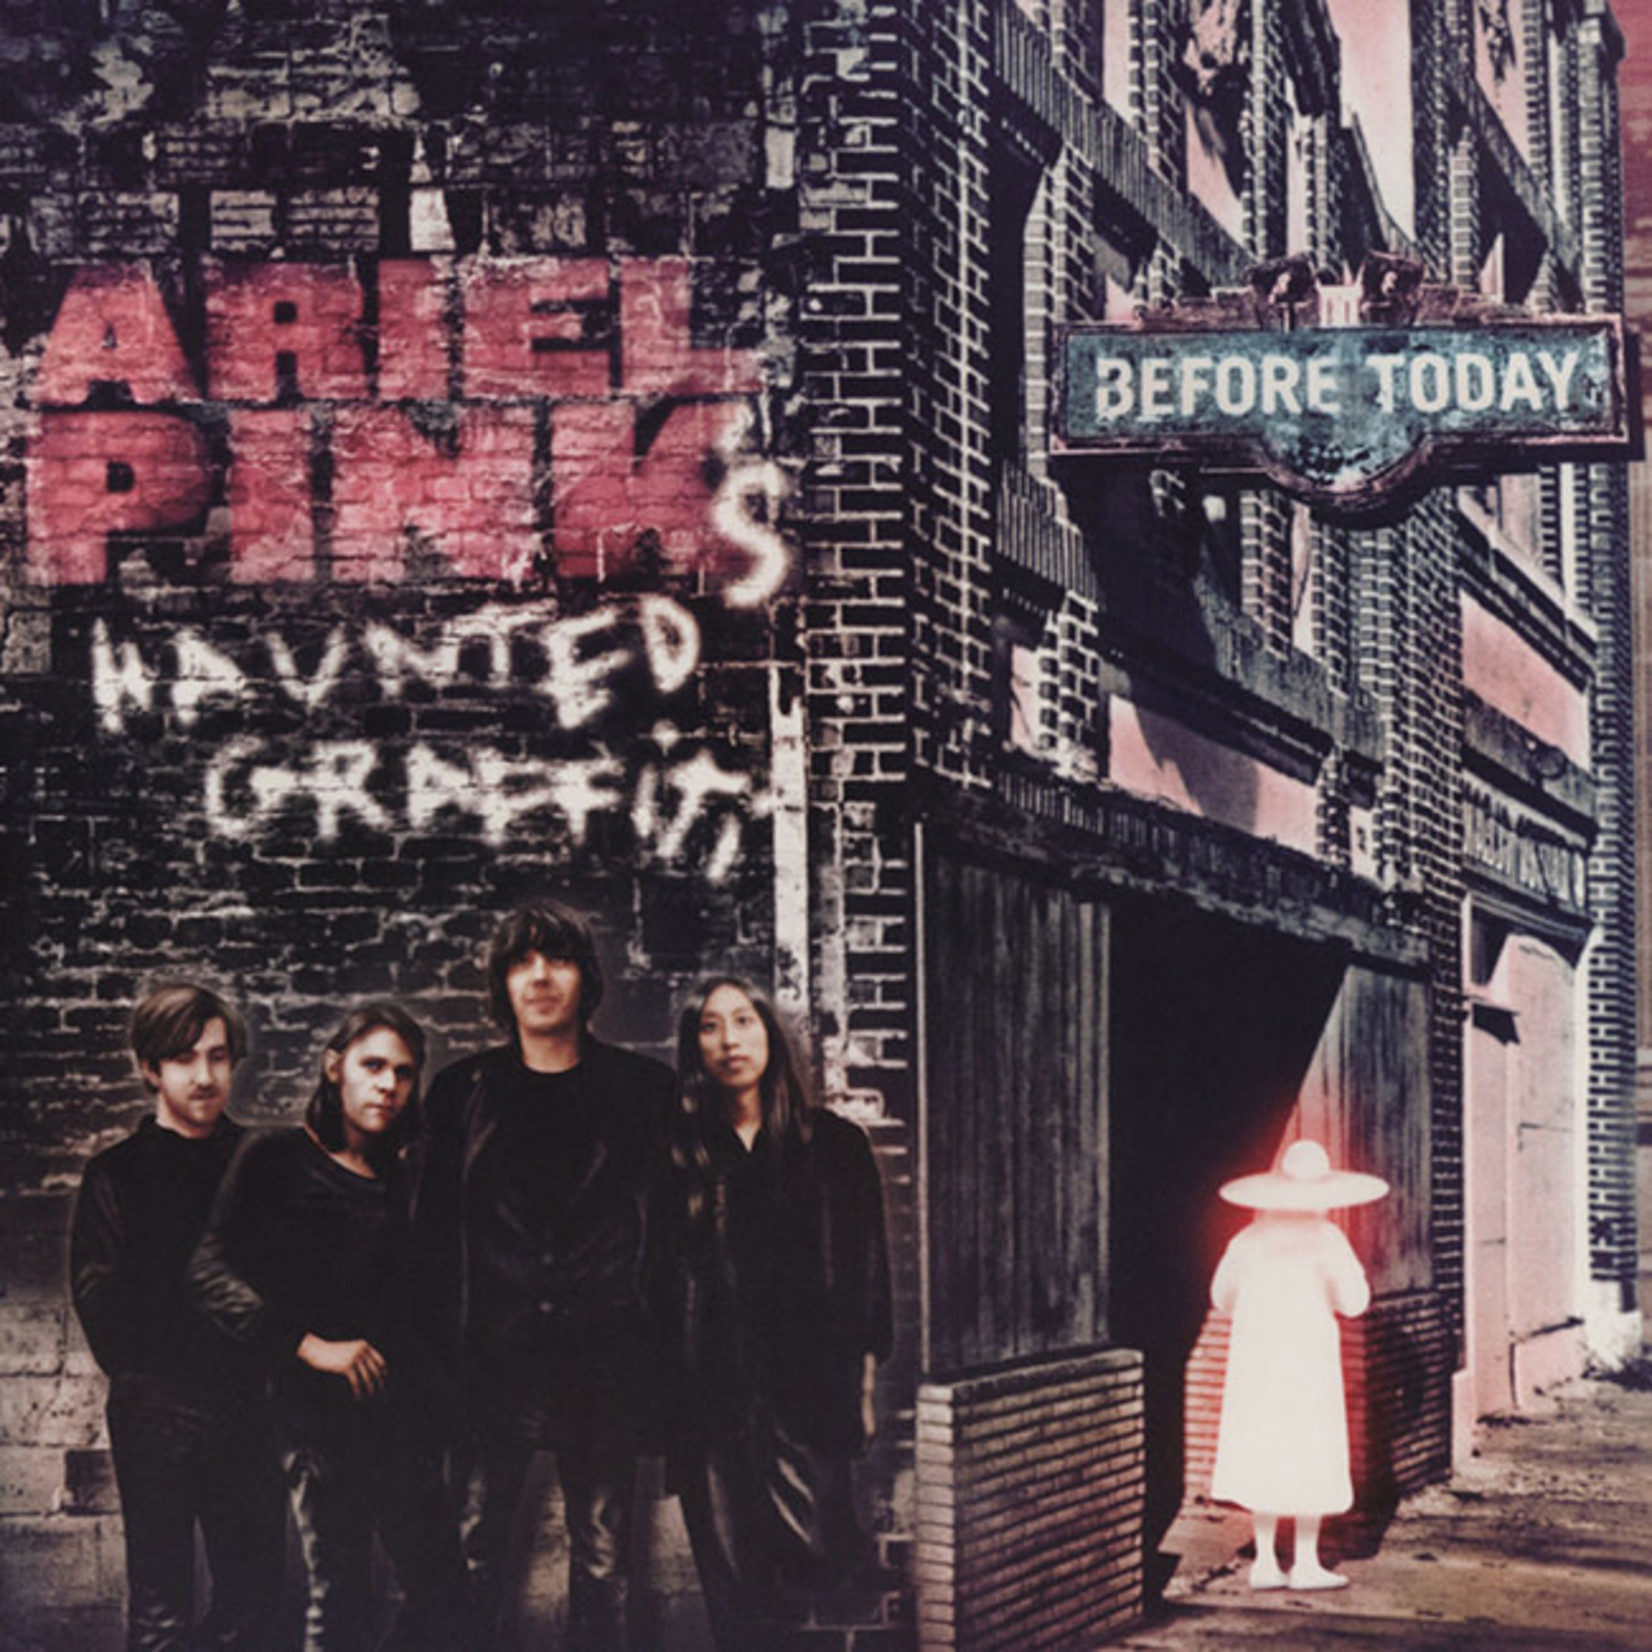 [New] Ariel Pink's Haunted Graffiti: Before Today